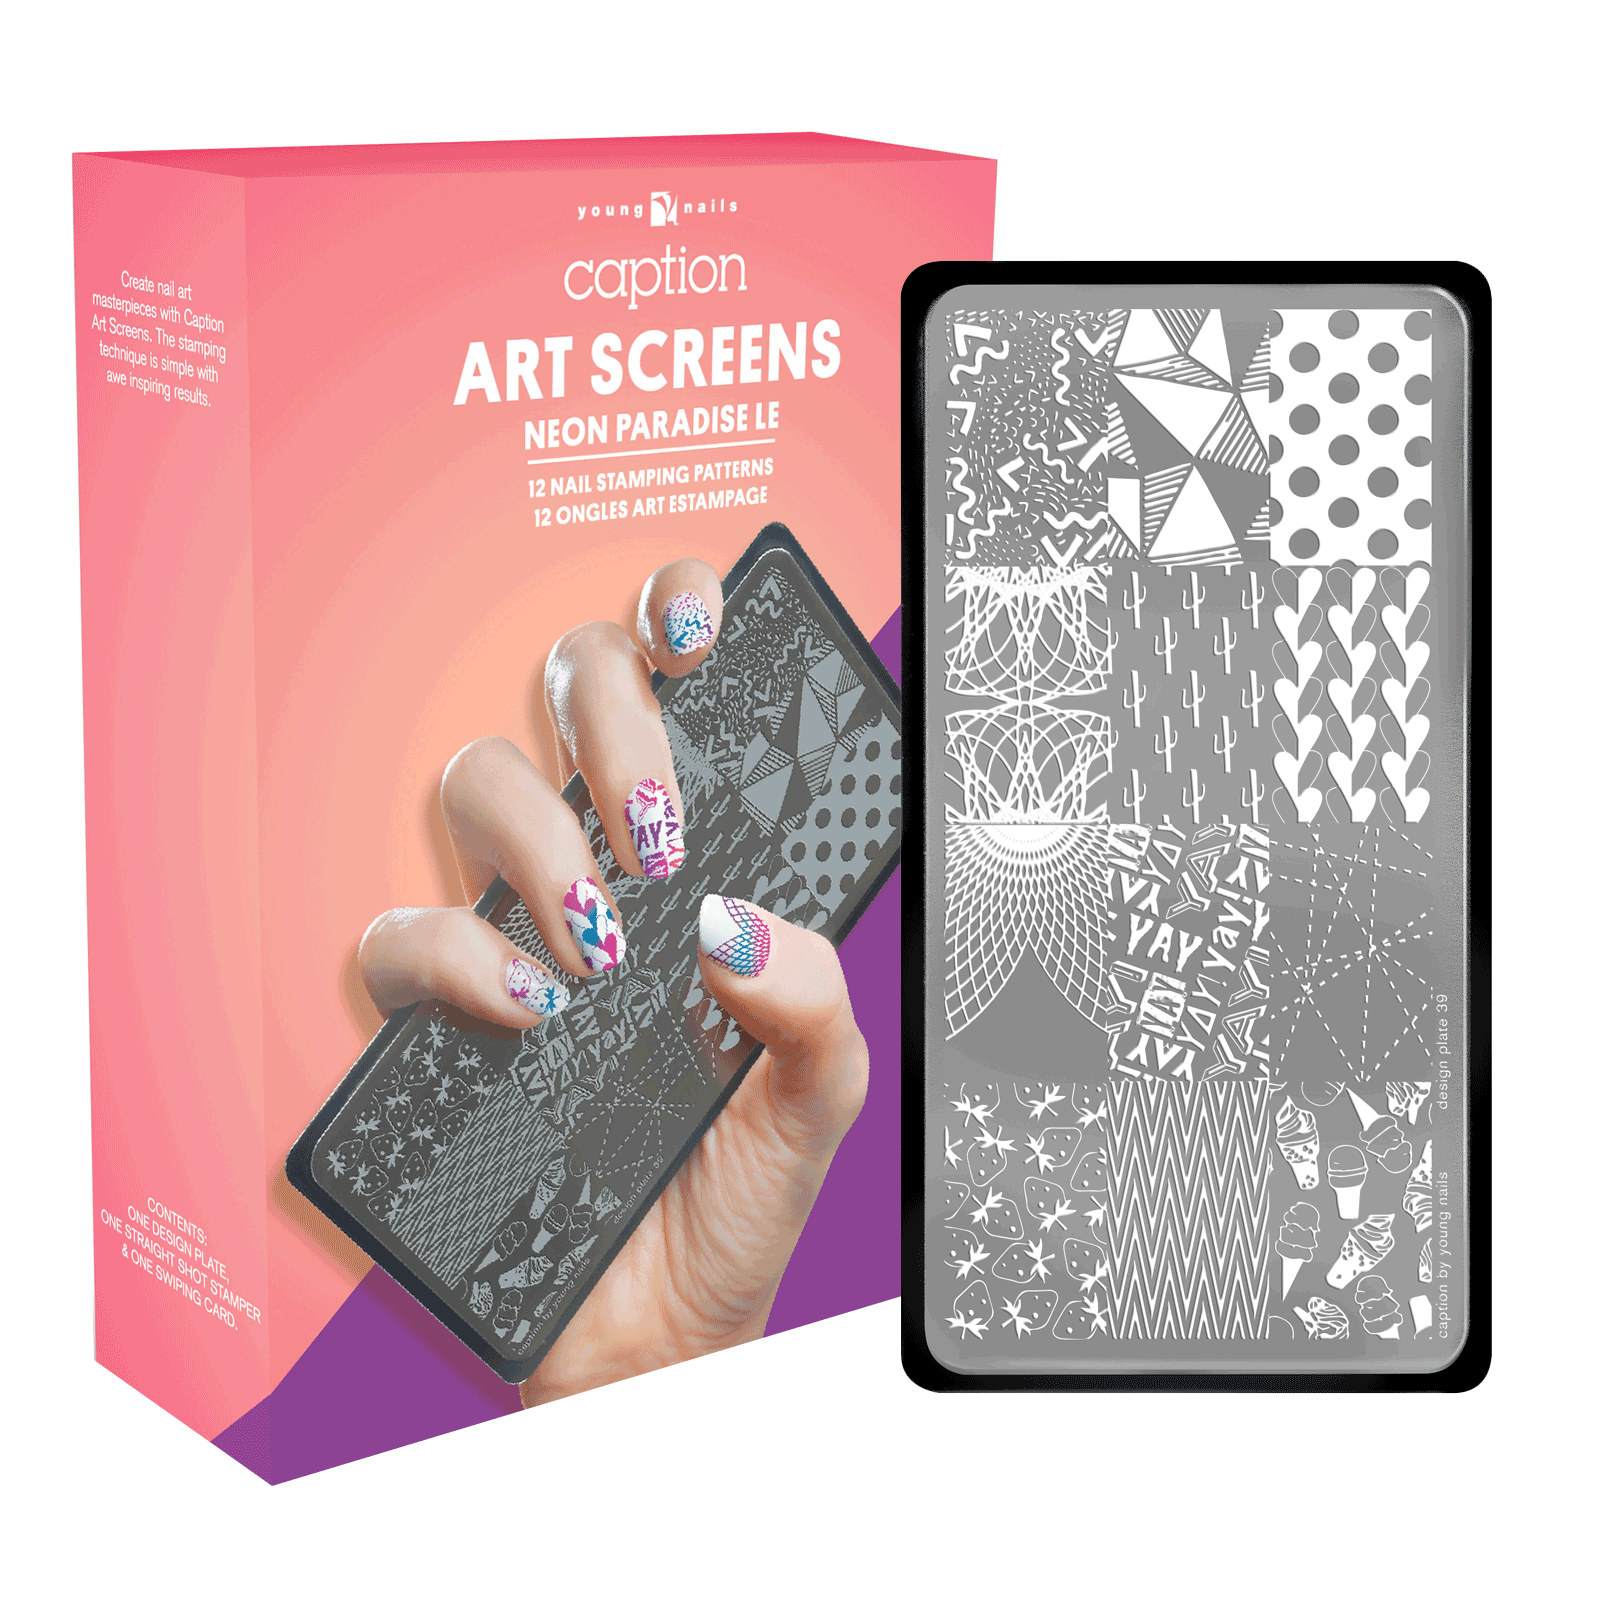 NEON Paradise Art Screen - Young Nails Inc | CosmoProf